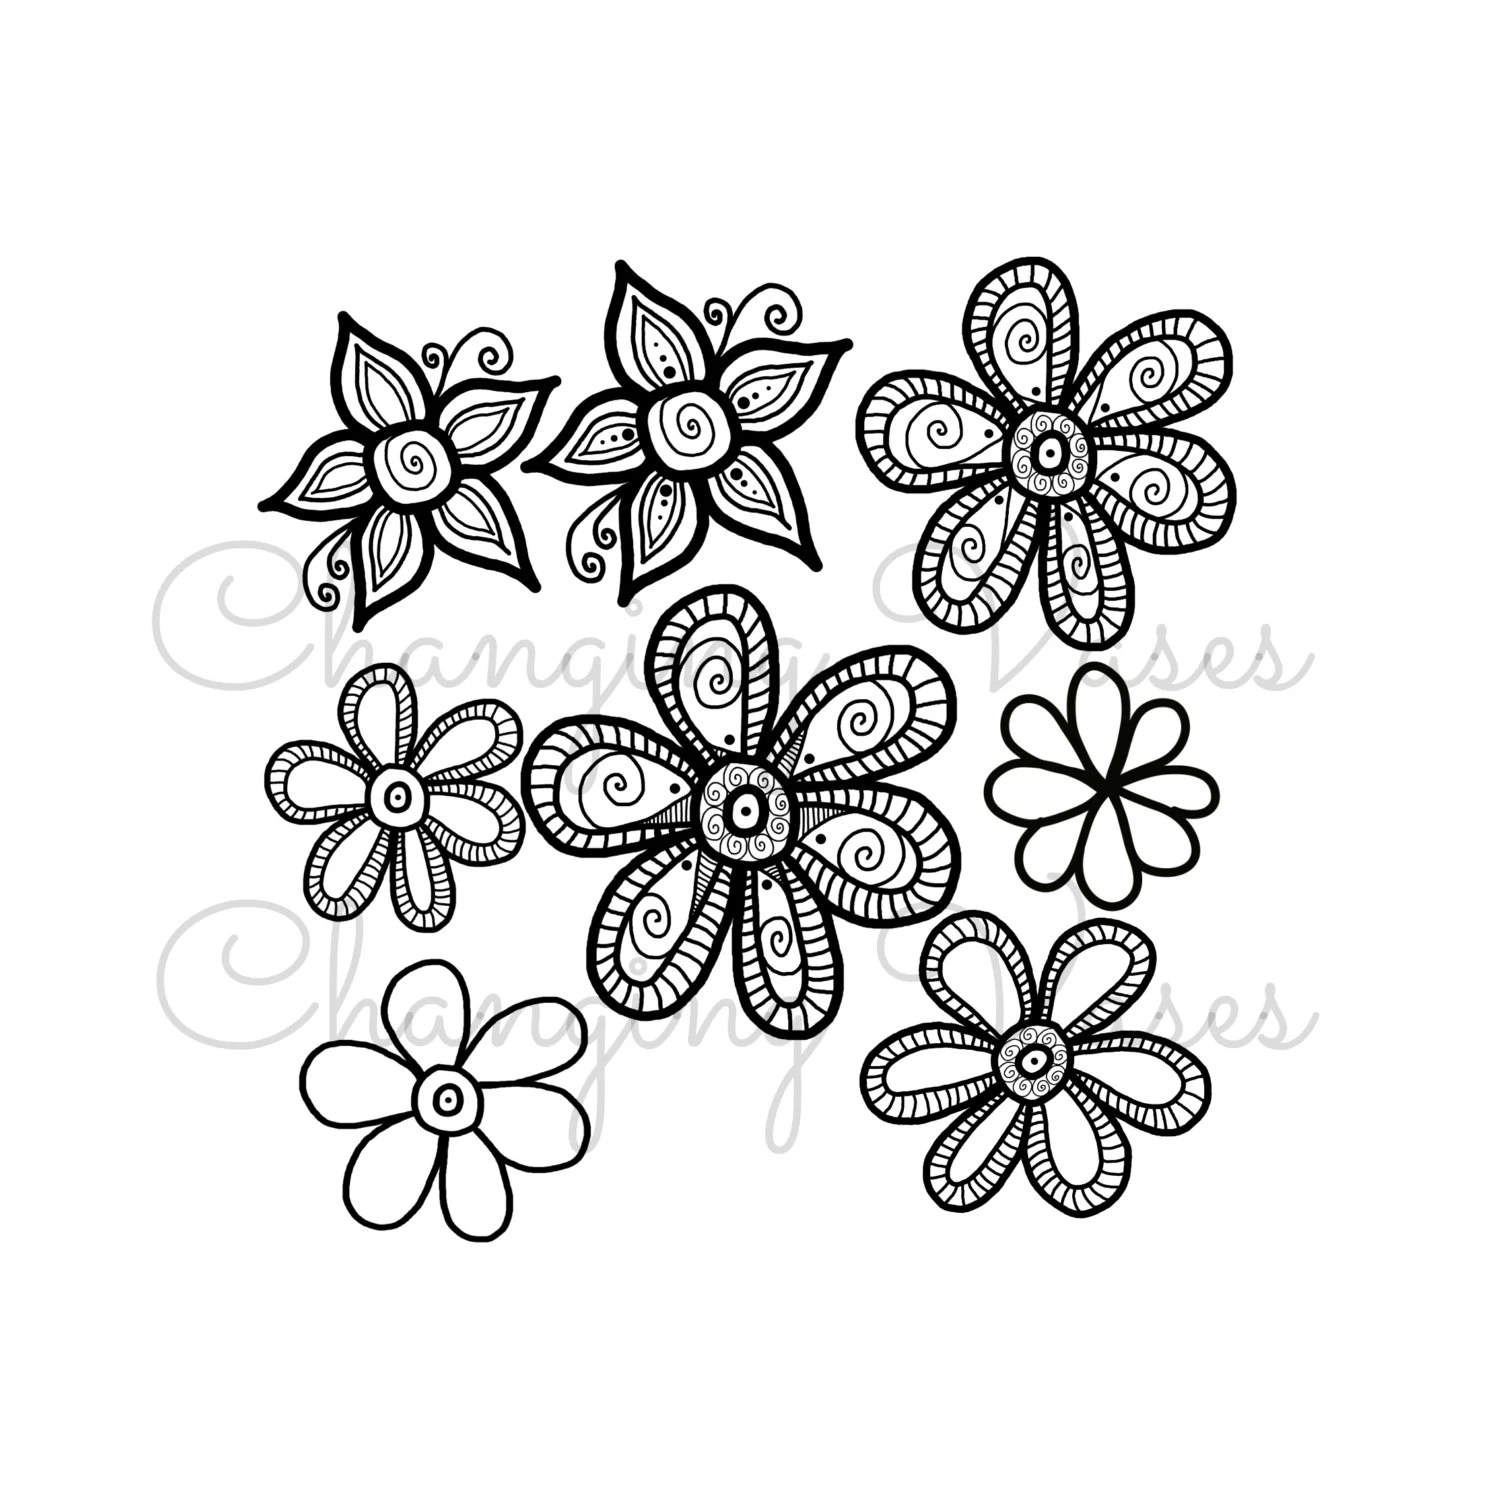 8 Hand Drawn Doodle Flowers Clipart Digital Scrapbooking Clip